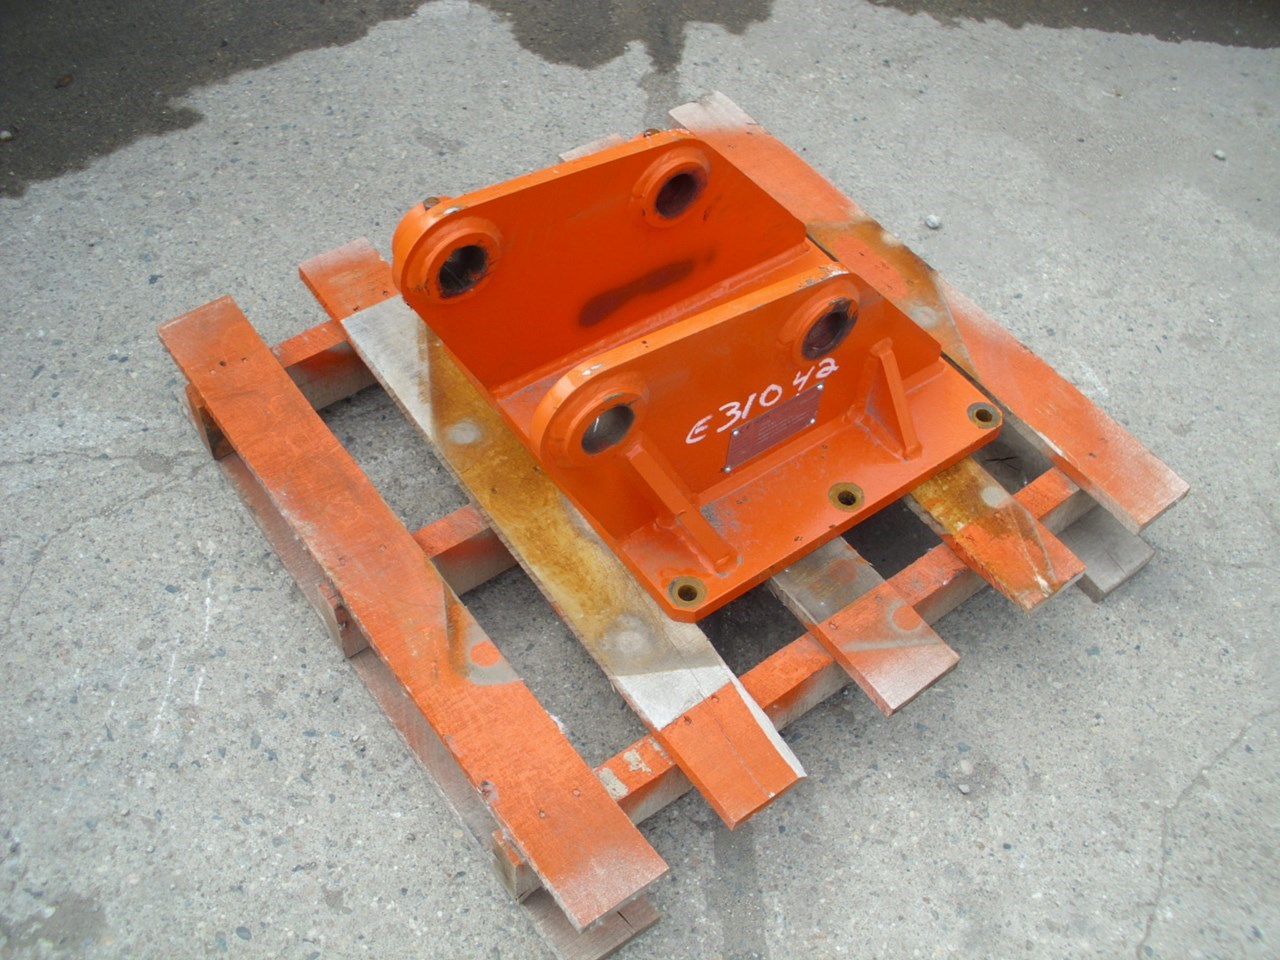 2011 NPK GH-3TOP Excavator Attachment For Sale